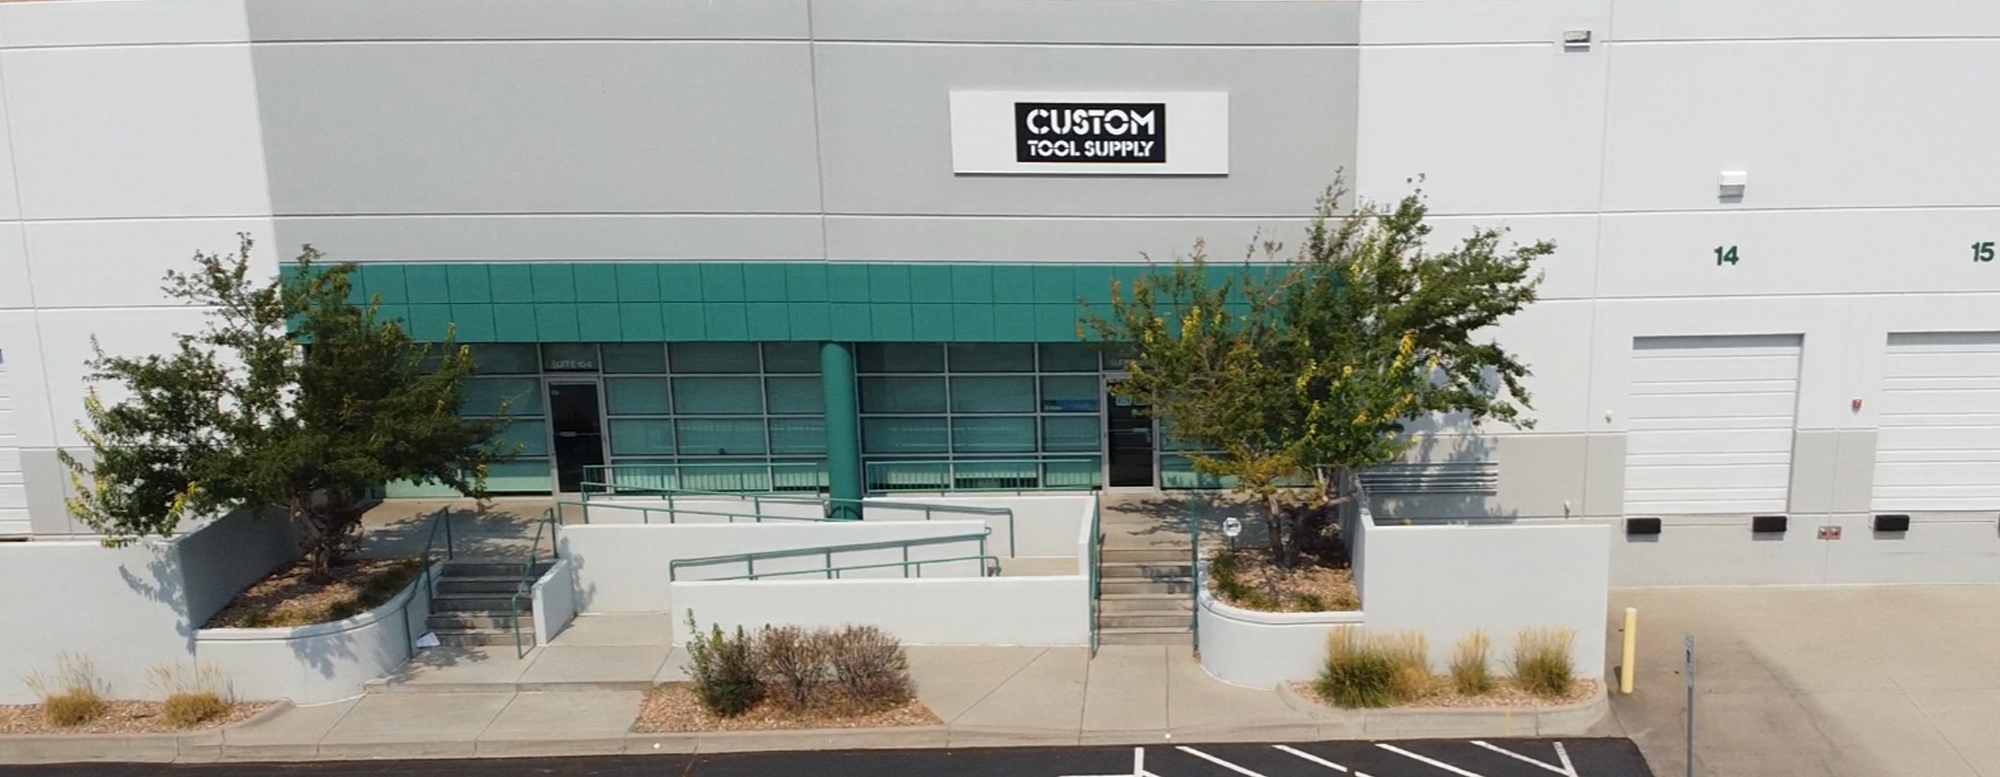 GME Supply's Storefront & Distribution Center located in Denver, CO